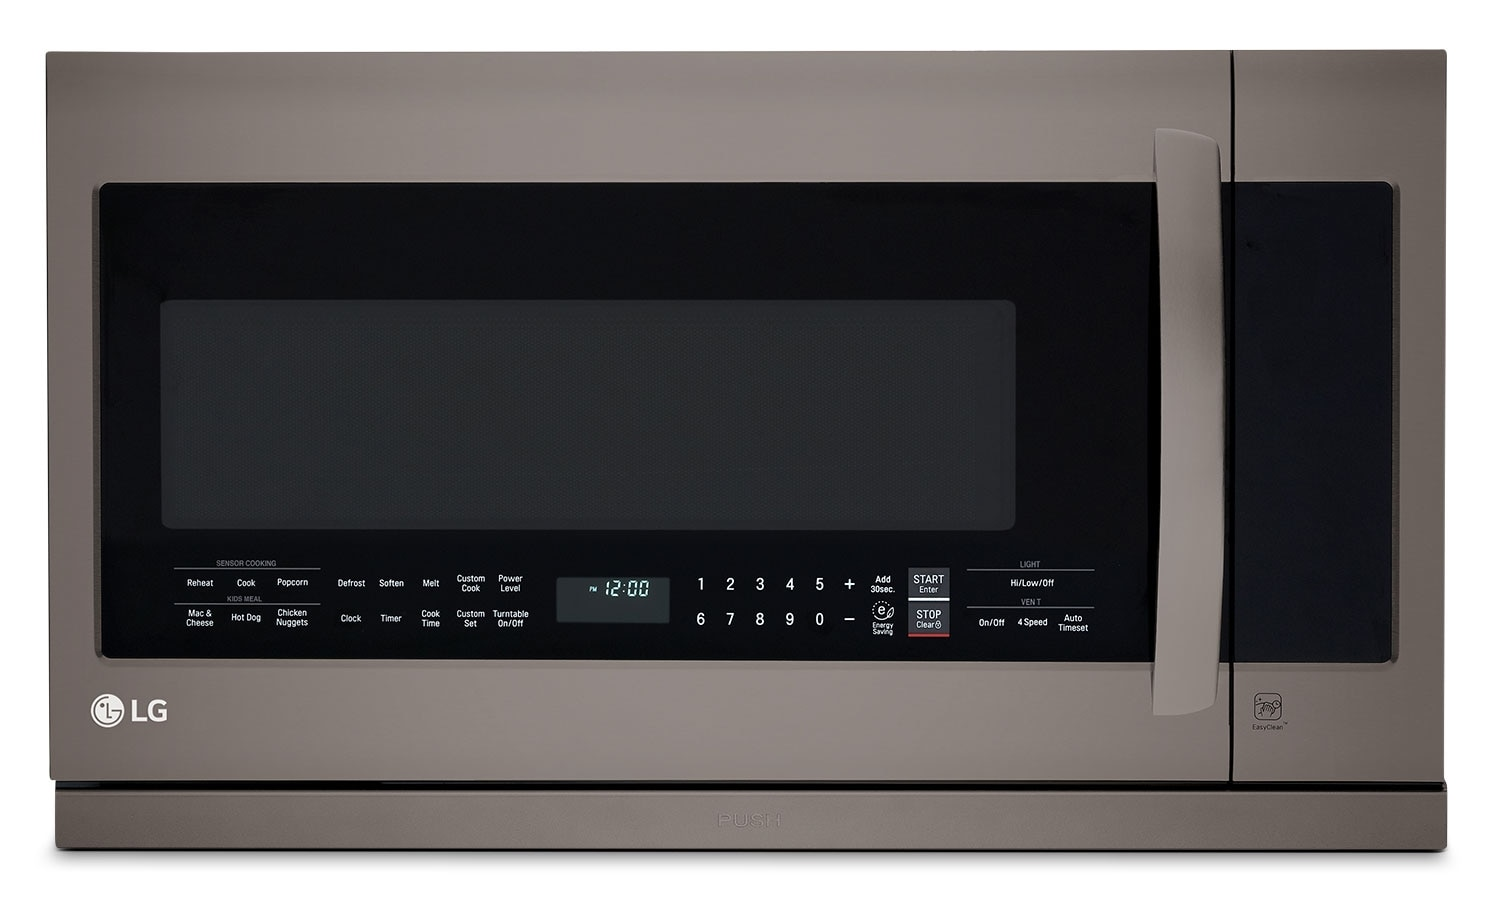 Cooking Products - LG Appliances Black Stainless Steel Over-the-Range Microwave (2.2 Cu. Ft.) - LMV2257BD